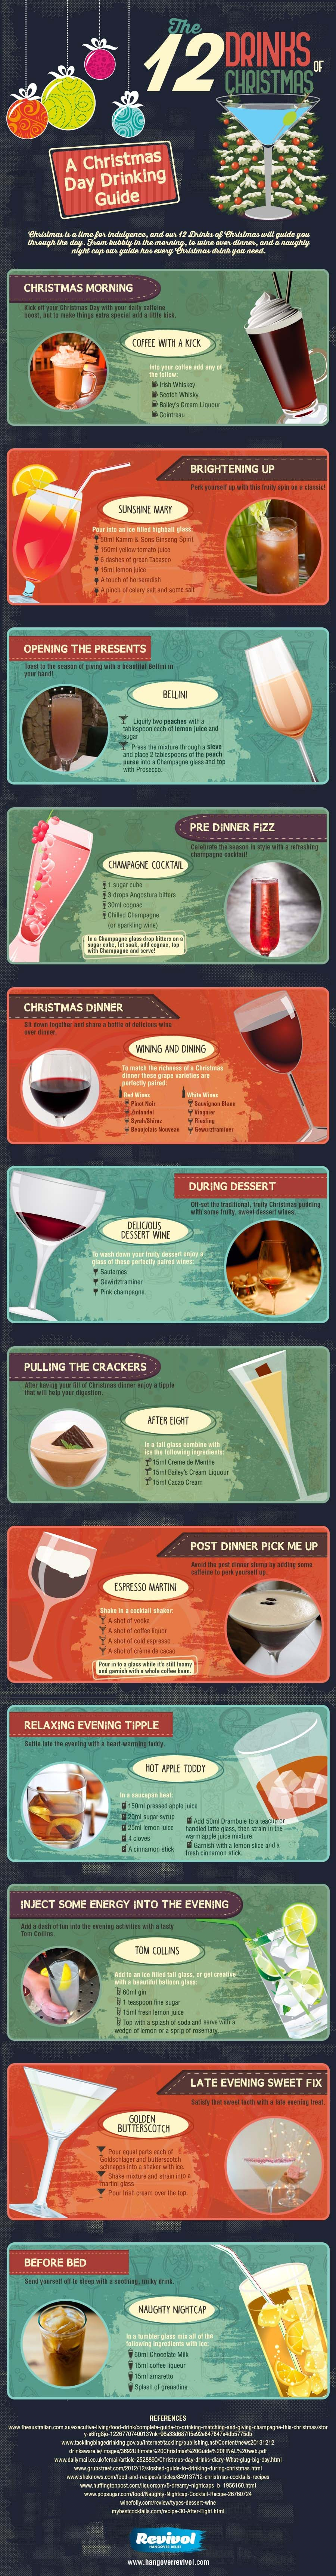 Revivol-Christmas-Drinks-Infographic-plaza